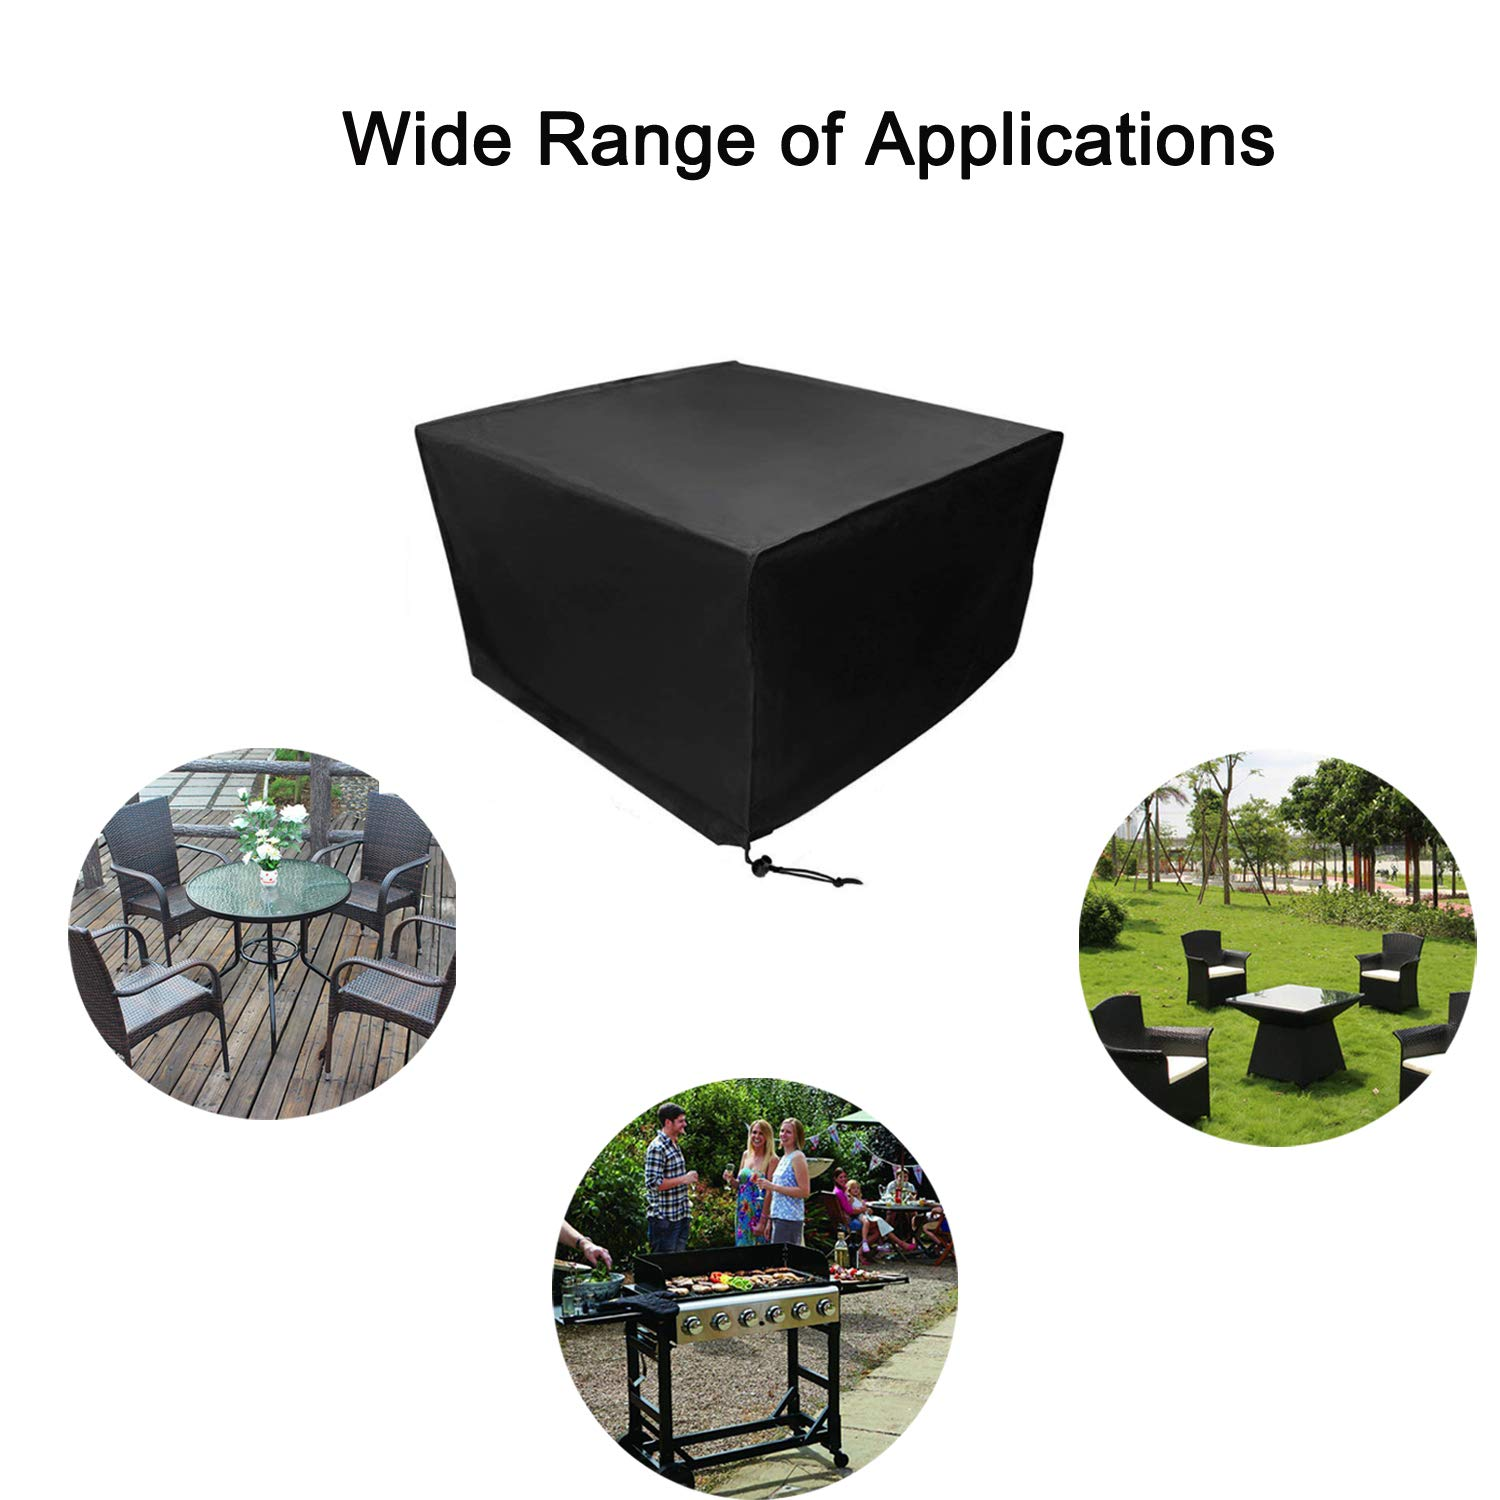 53.1 * 53.1 * 29.1 inch BoRui Garden Furniture Covers,210D Oxford Fabric Grill Covers Waterproof Barbecue Covers Outdoor Anti-UV Patio Protectors Seat Chairs Table Covers Square